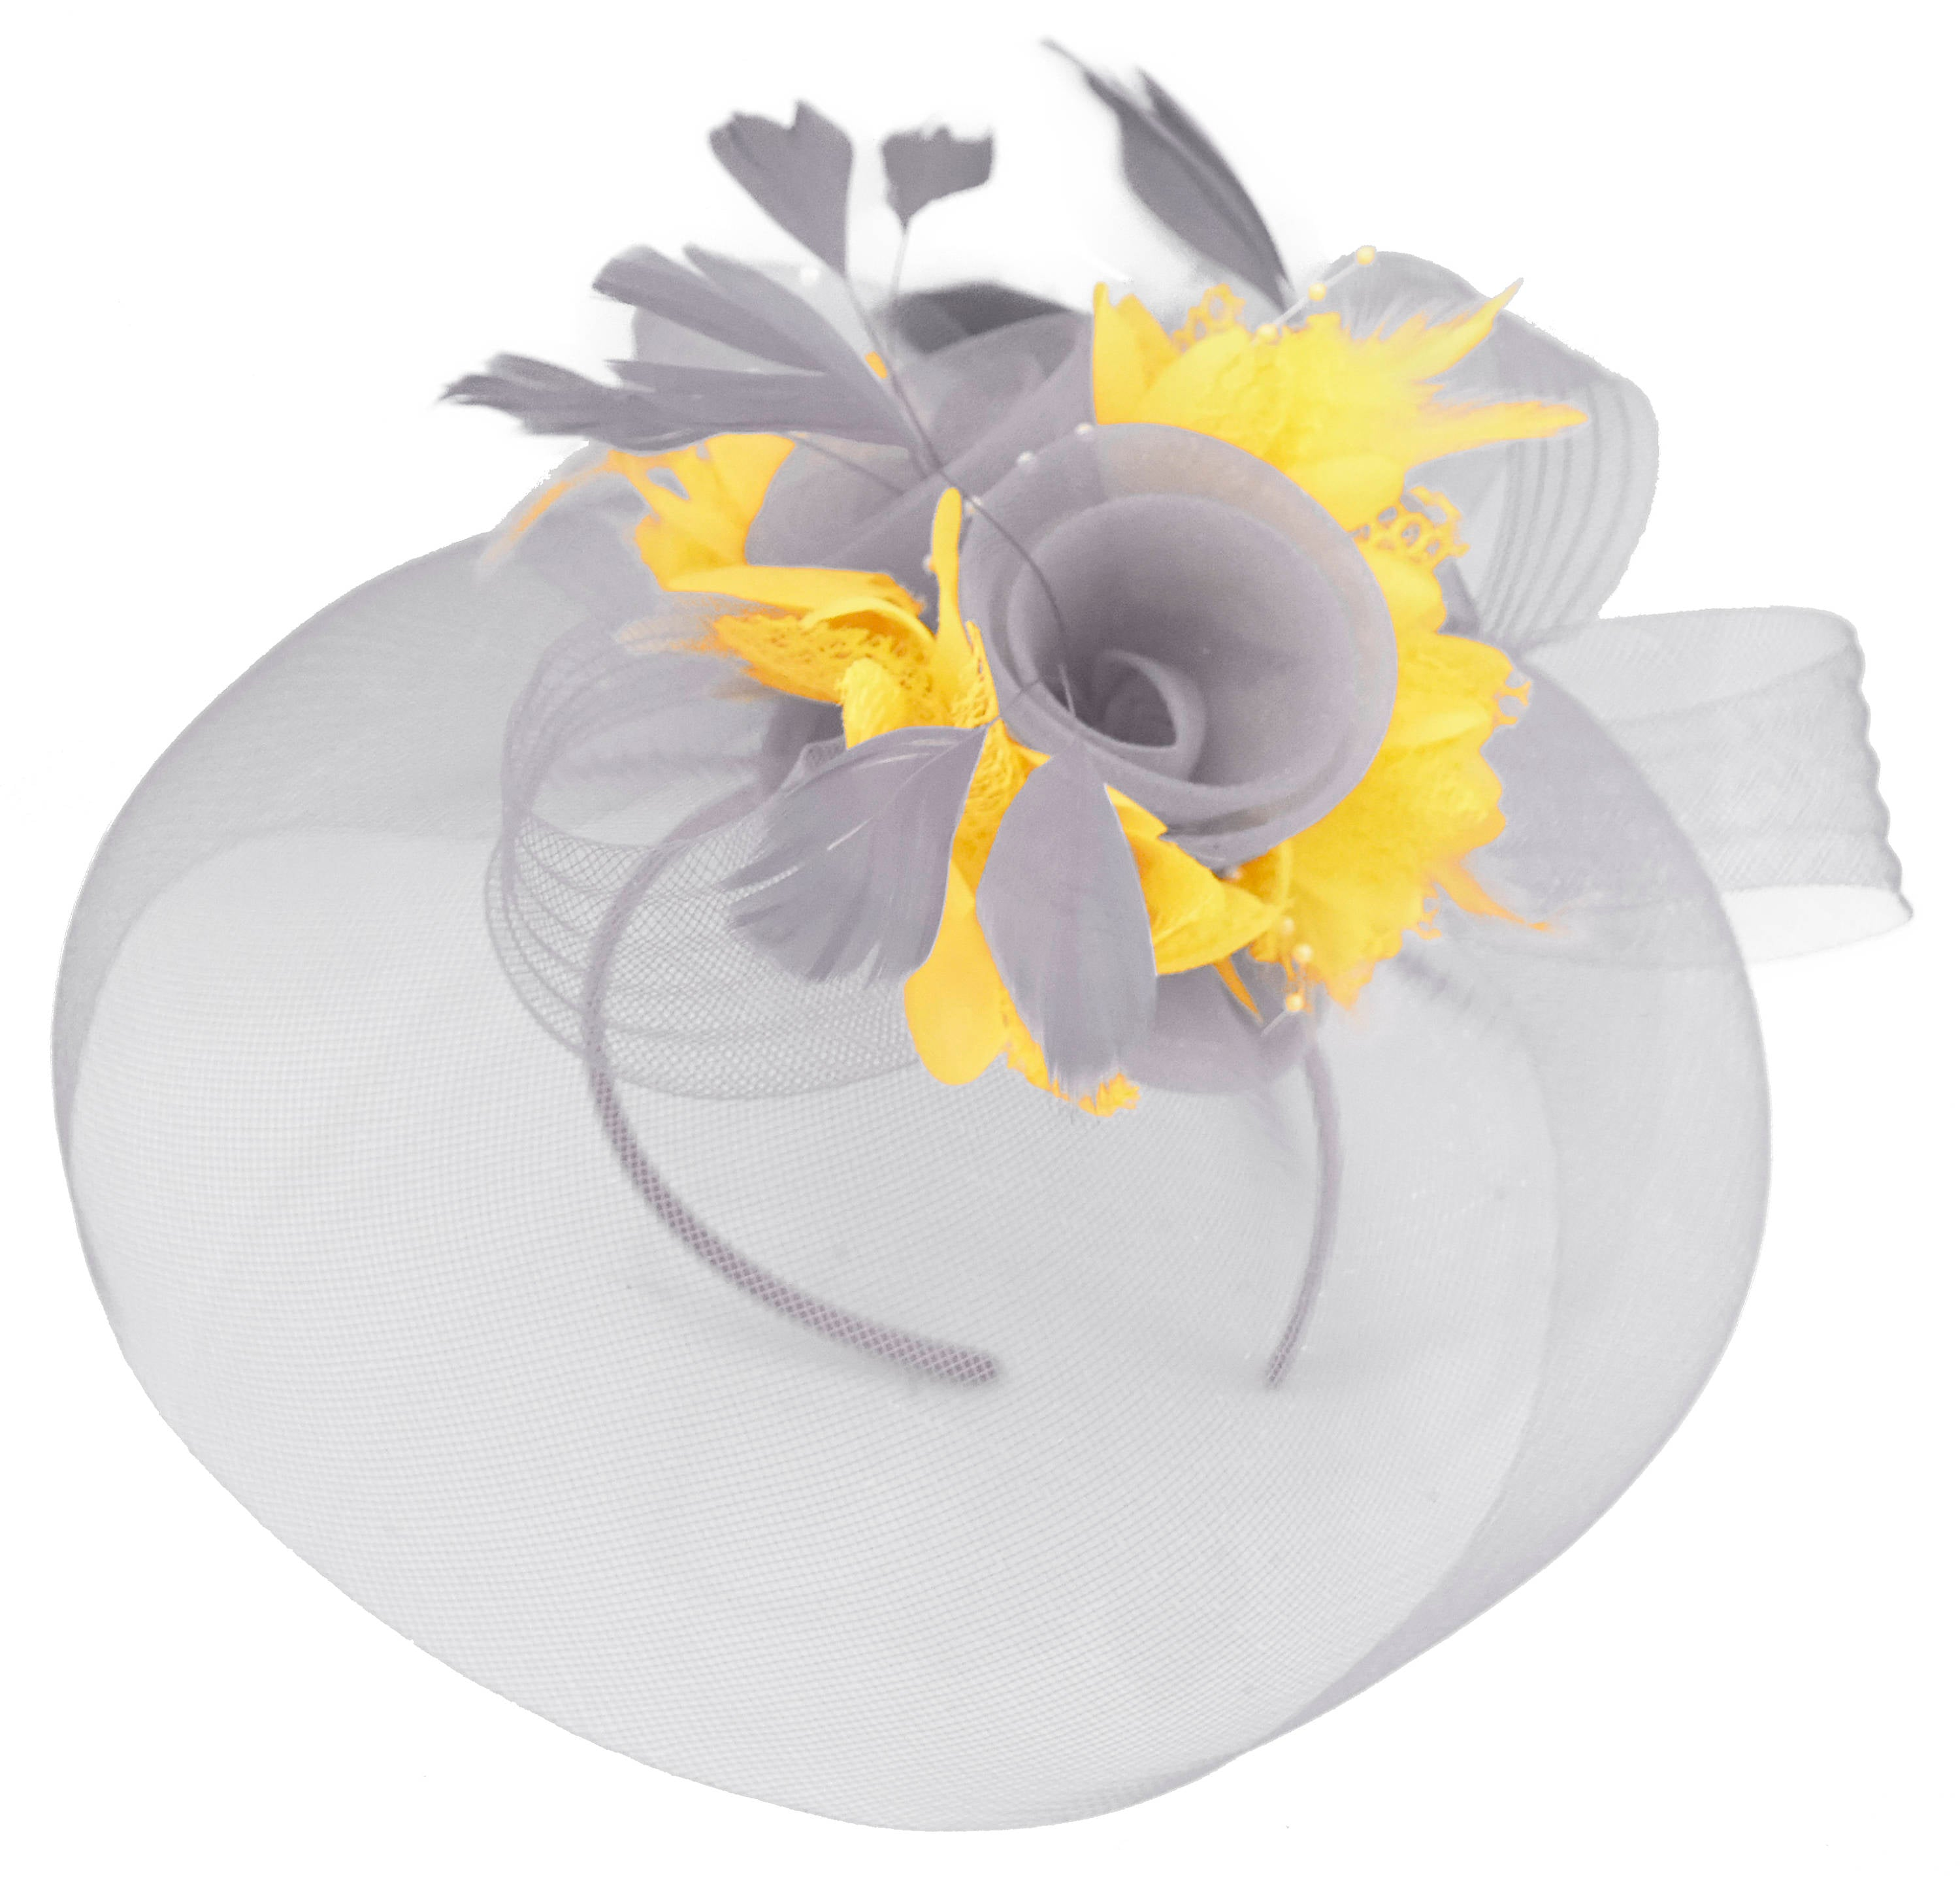 Caprilite Grey Silver and Yellow Fascinator on Headband Veil UK Wedding Ascot Races Hatinator